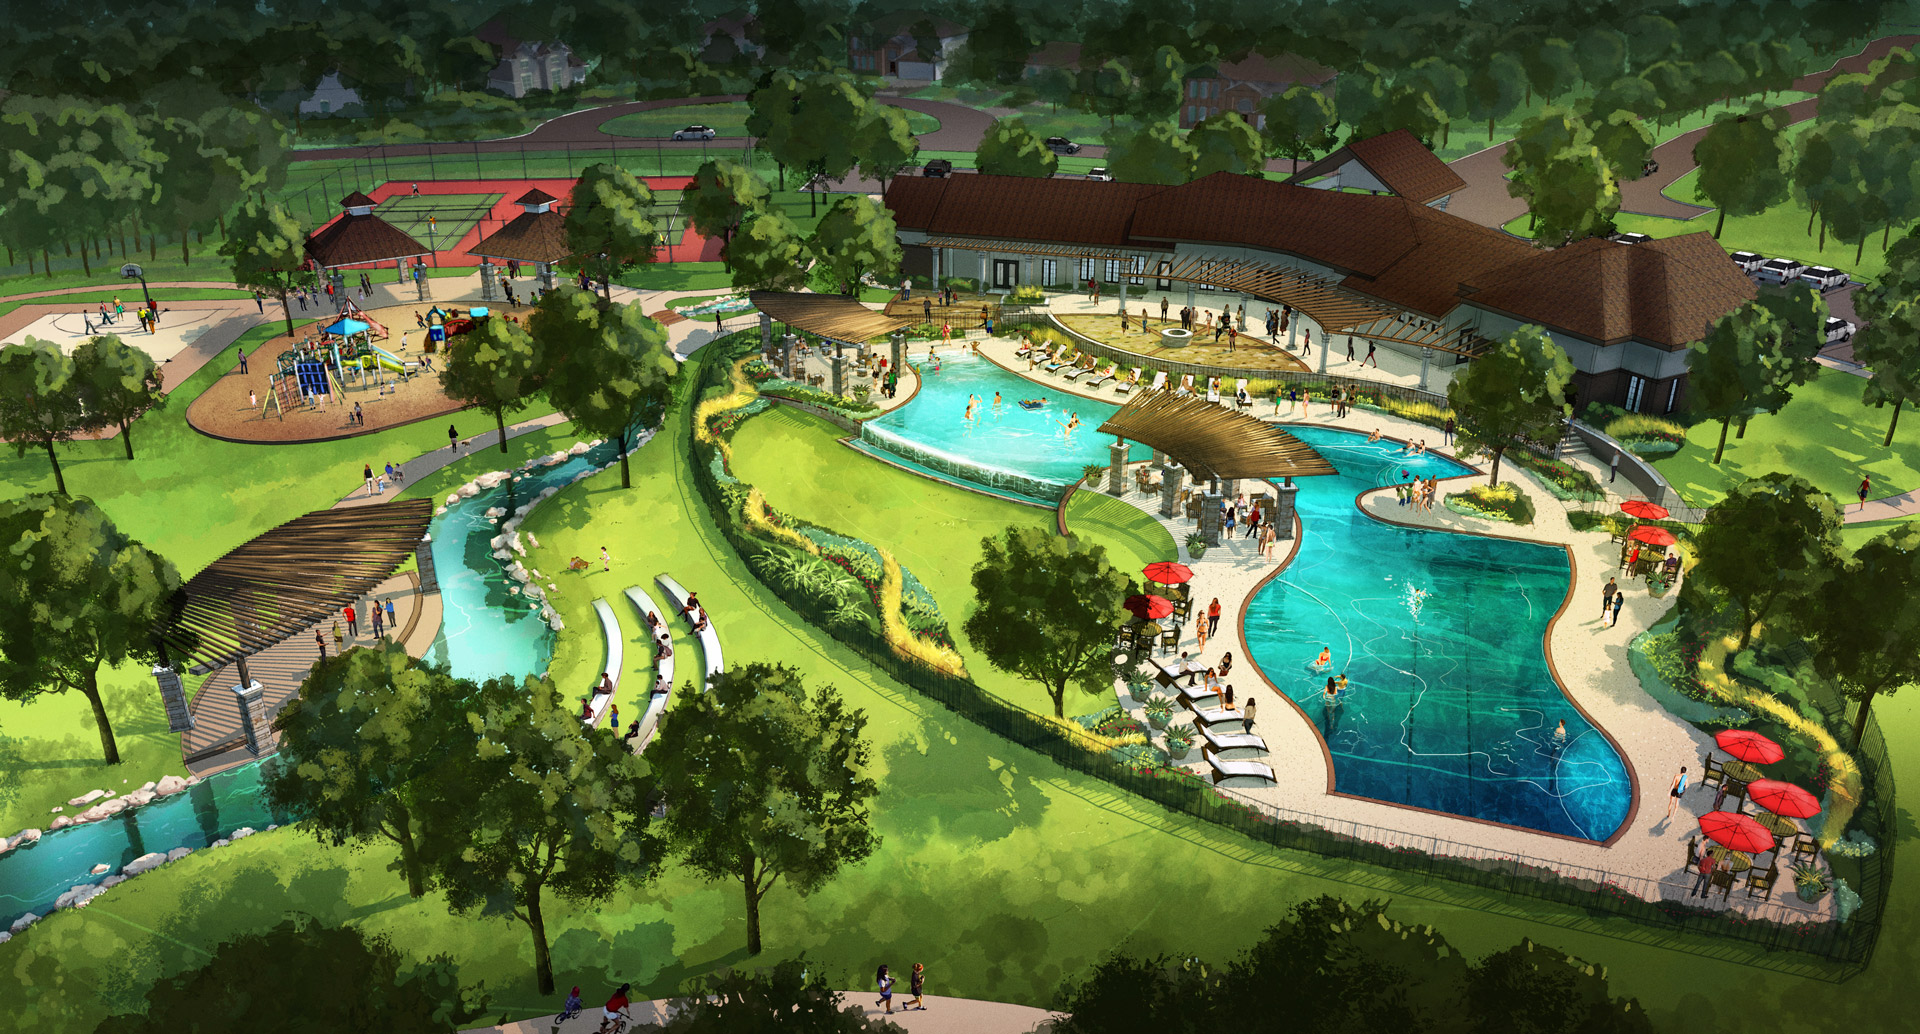 Riverchase-Amenity-Center---Aerial-Perspective-2